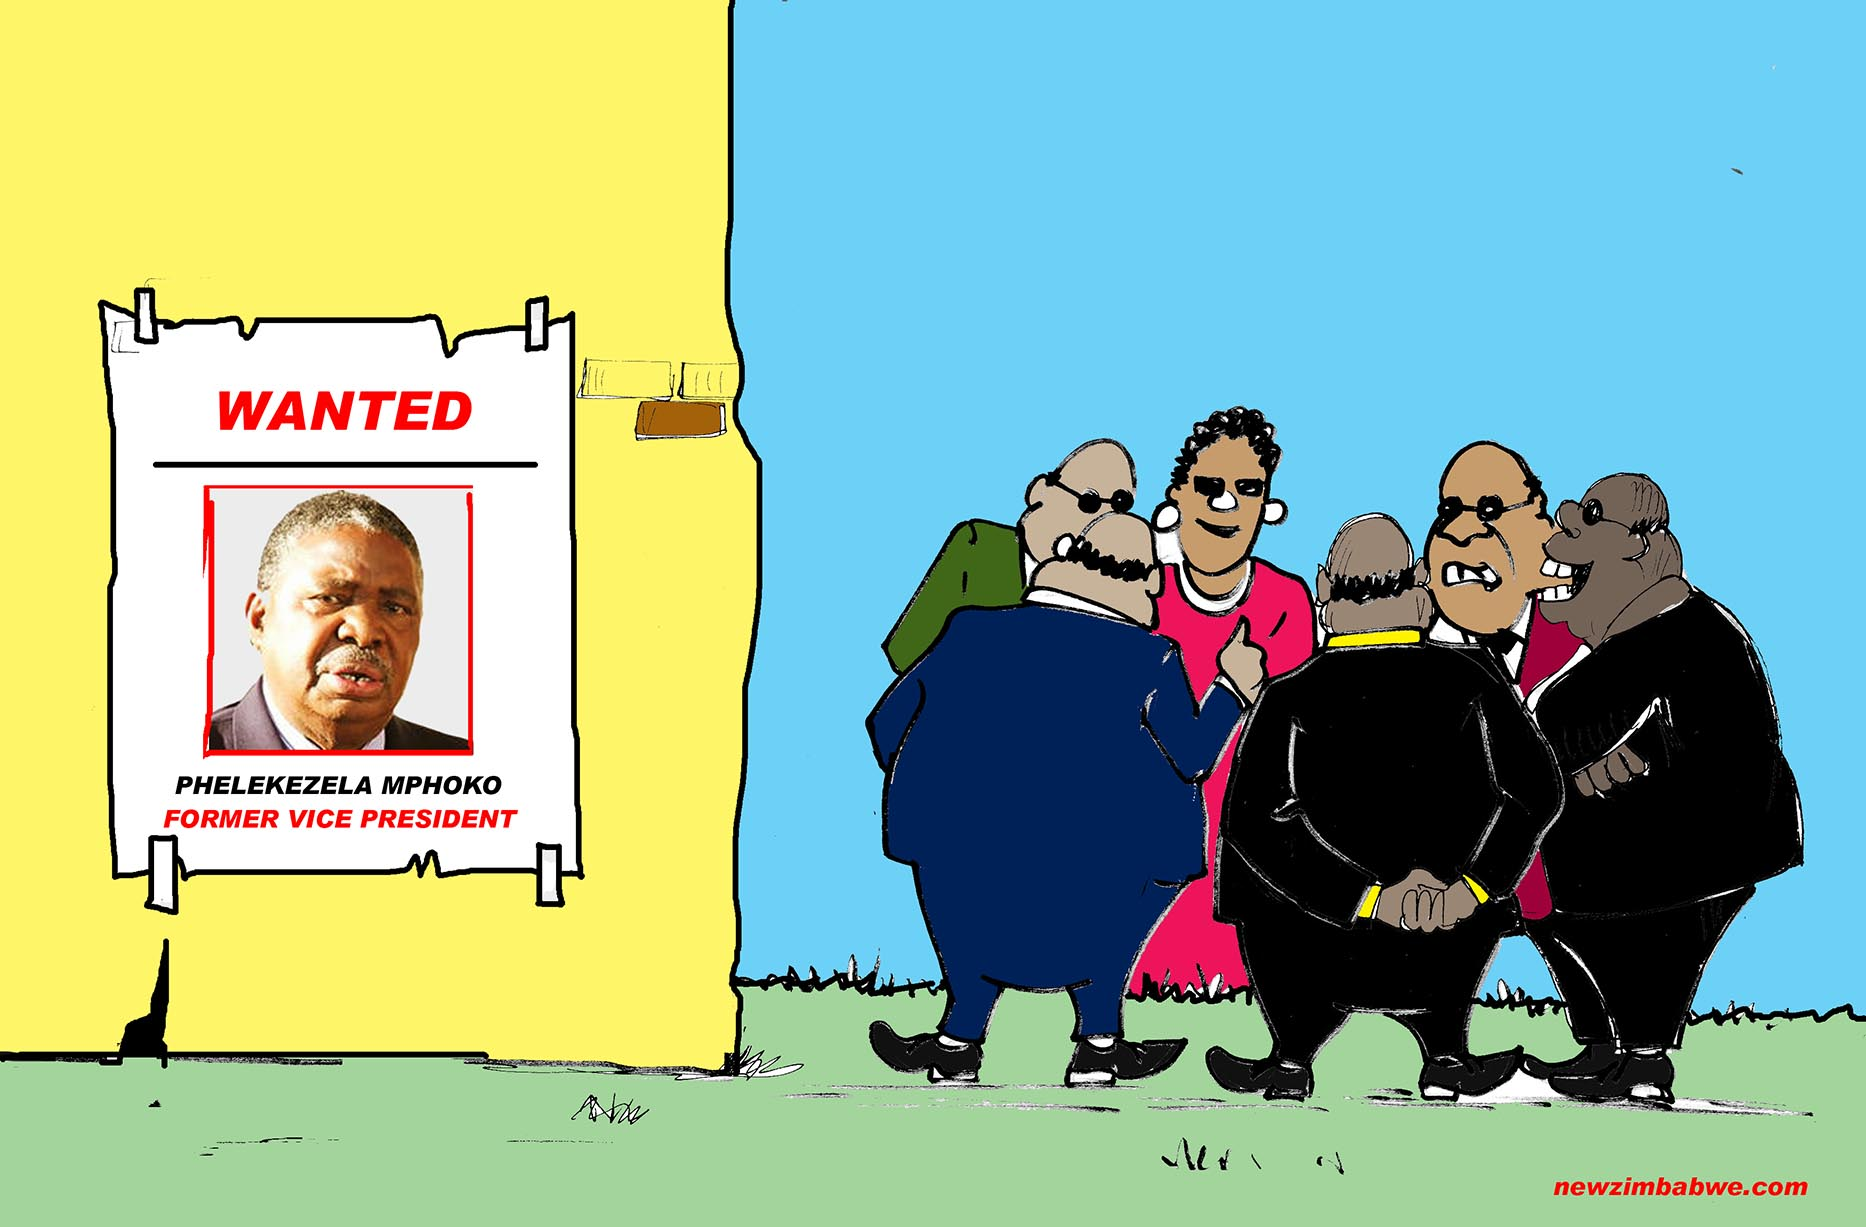 Mphoko now a wanted man